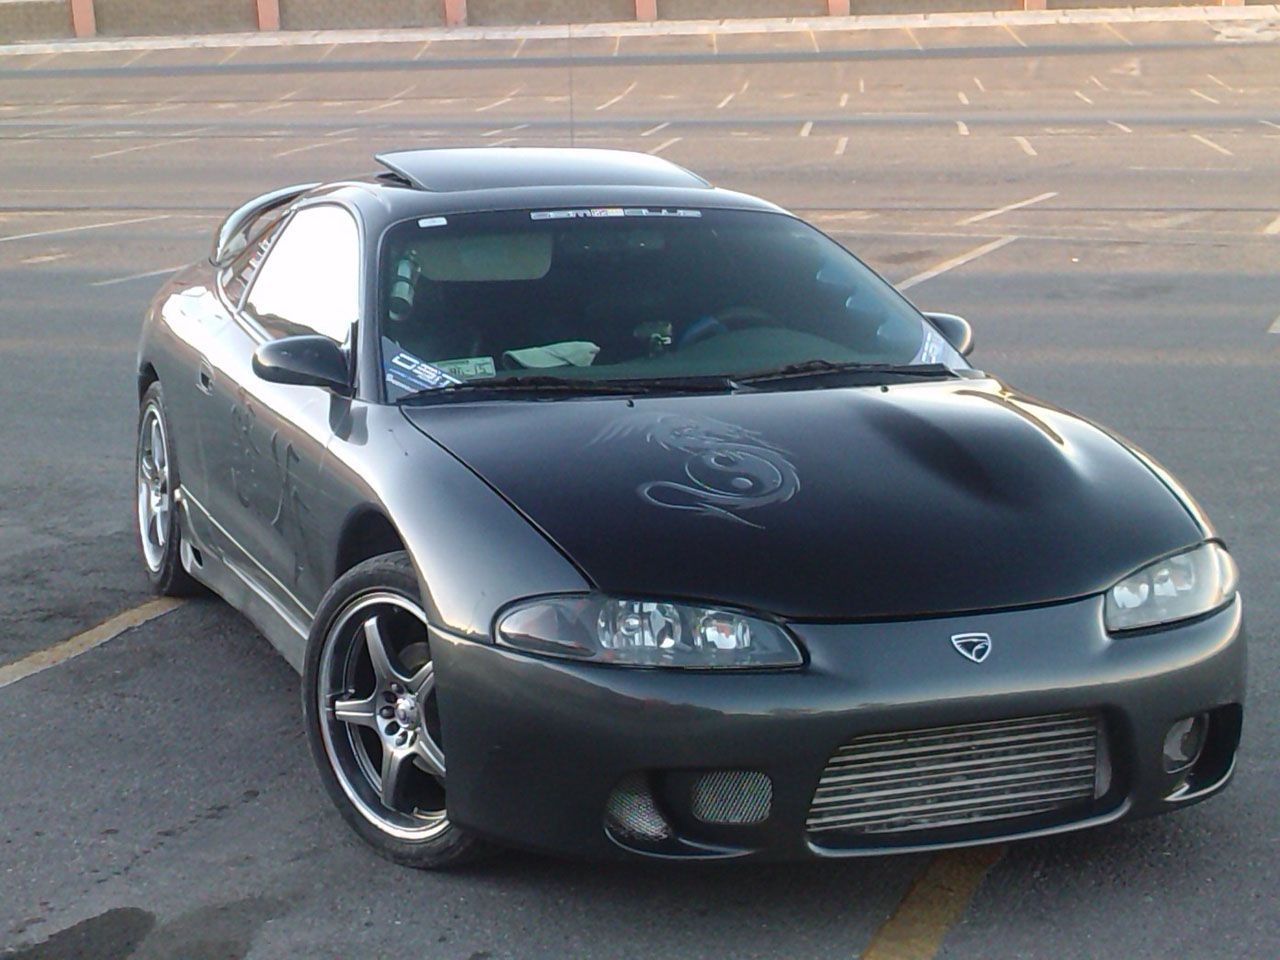 EagleTalon is simple flat ad wide styled car that looks amazing in